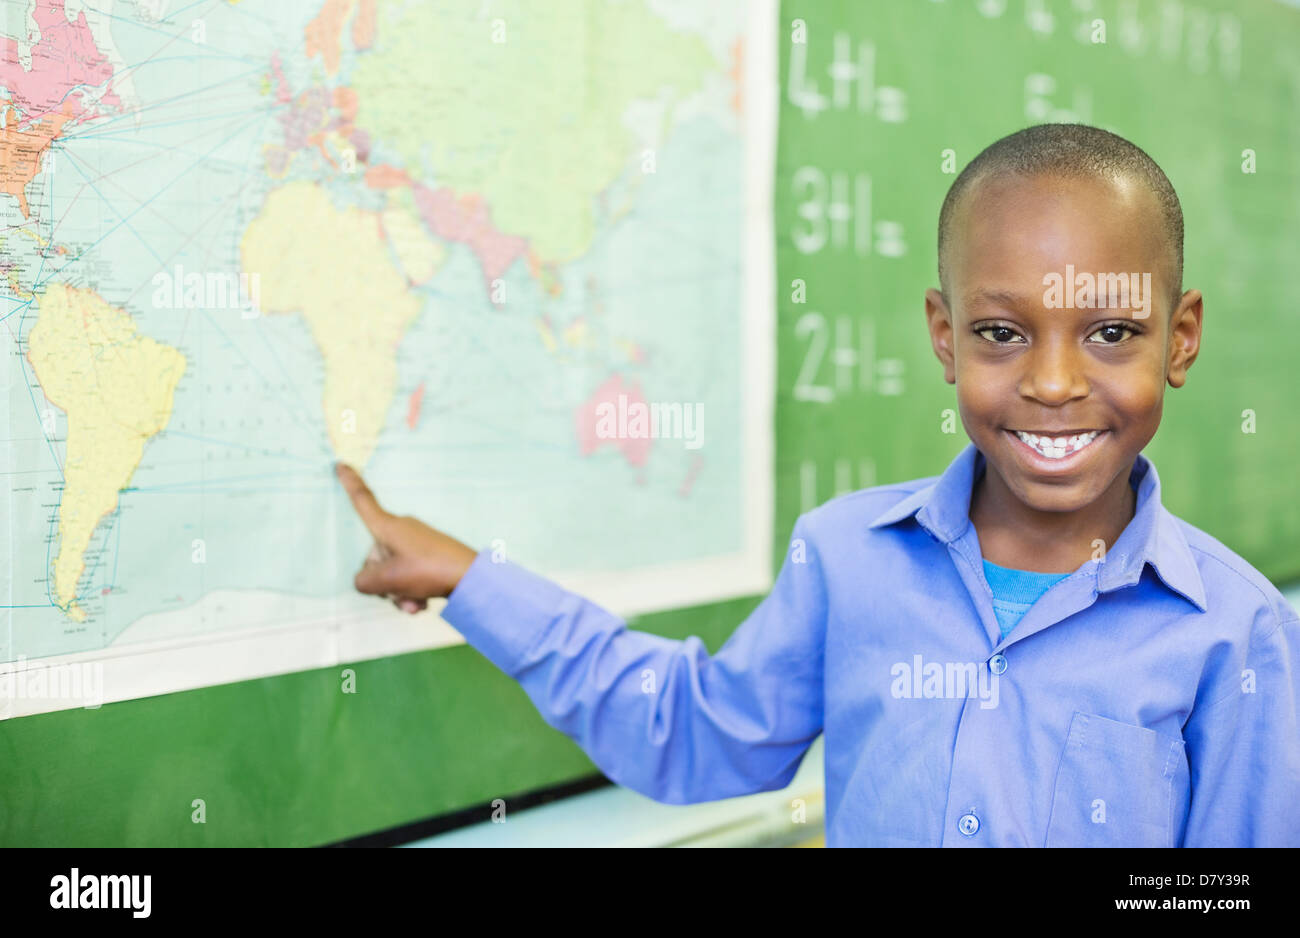 Student using world map in class - Stock Image